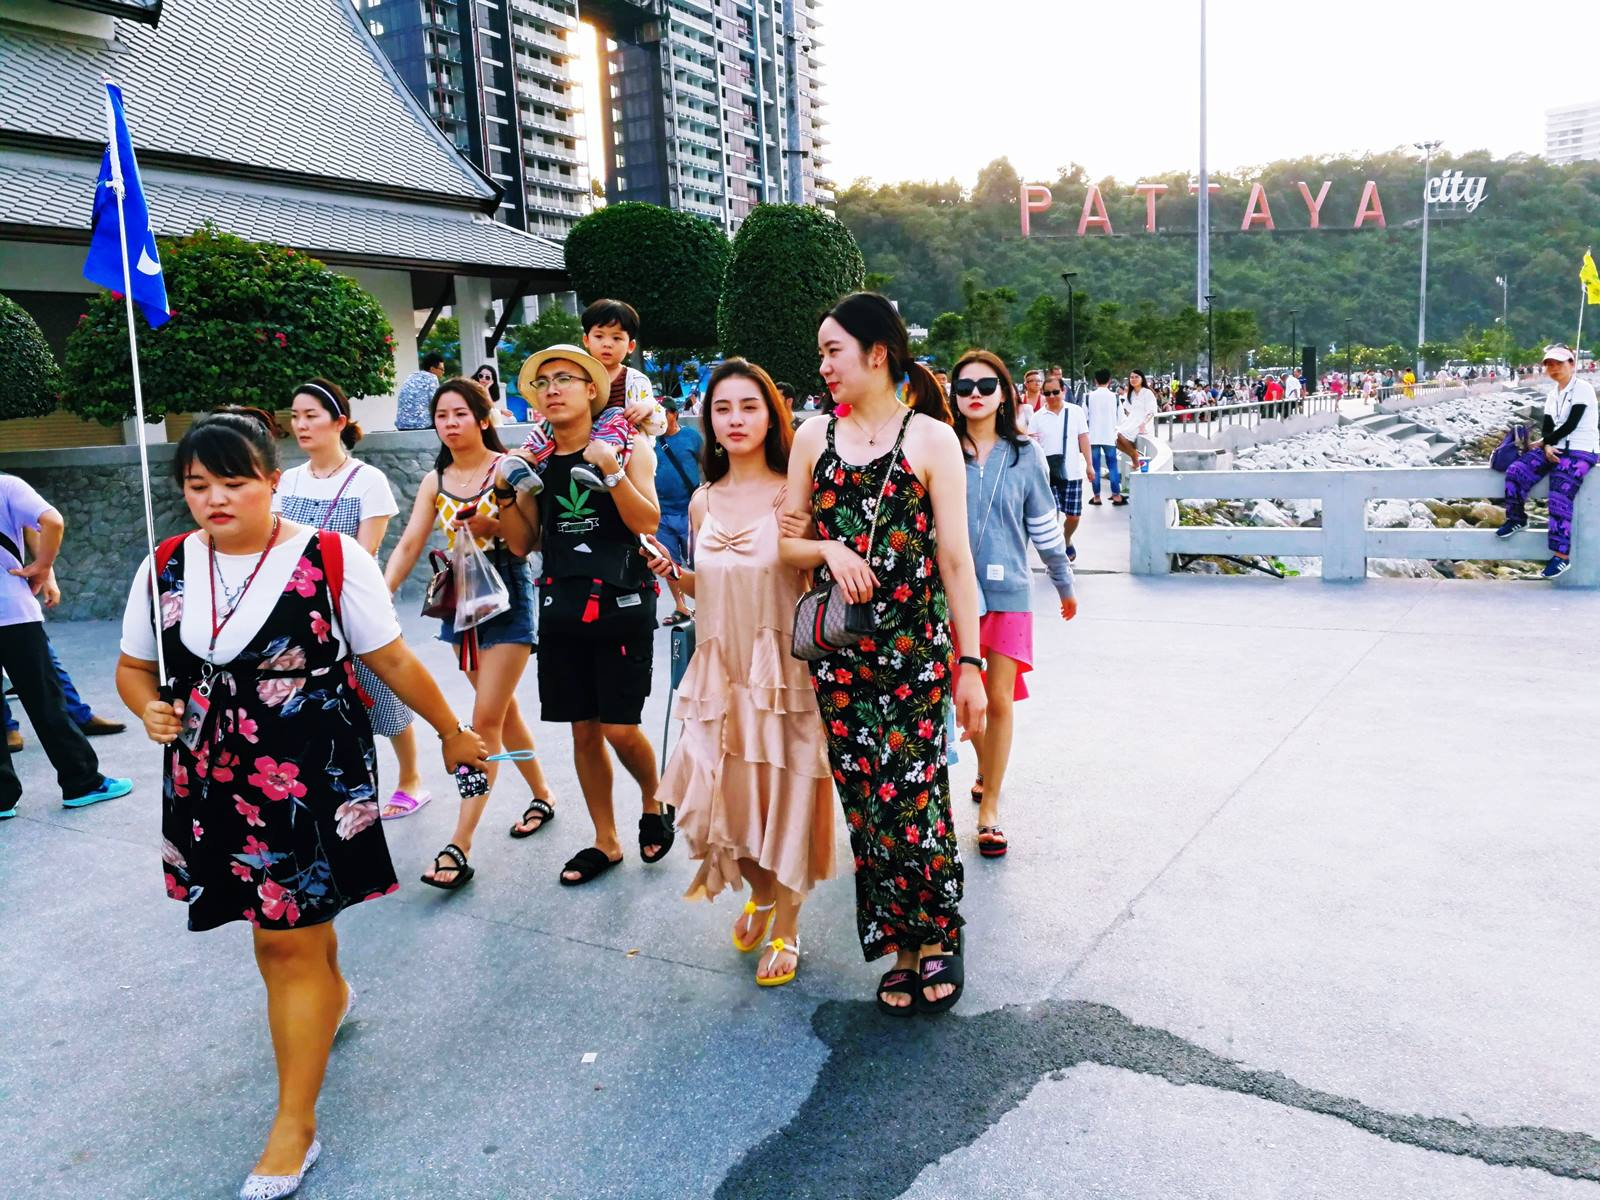 Chinese tourists in Pattaya